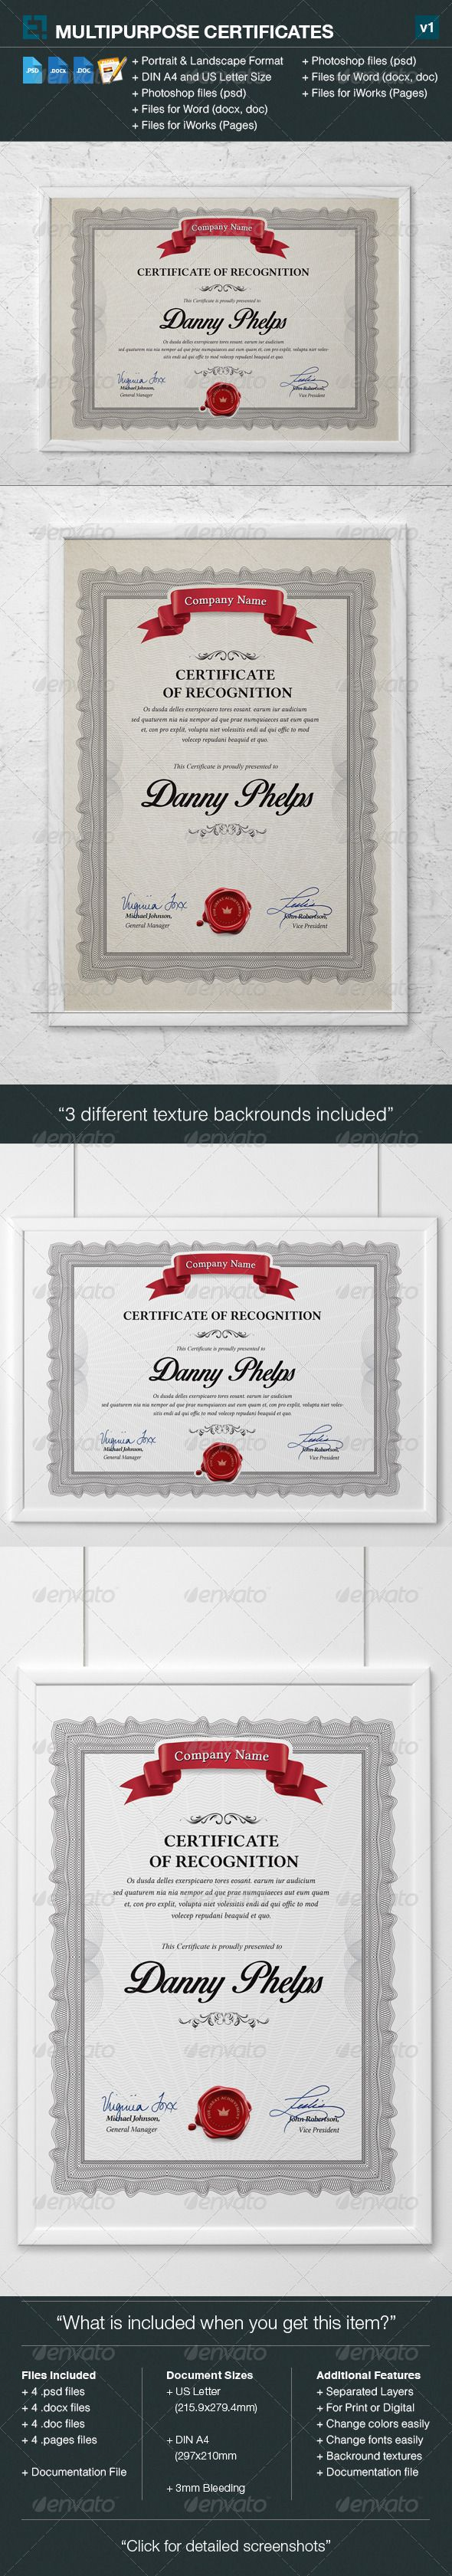 Pin on # Certificate Templates Designs